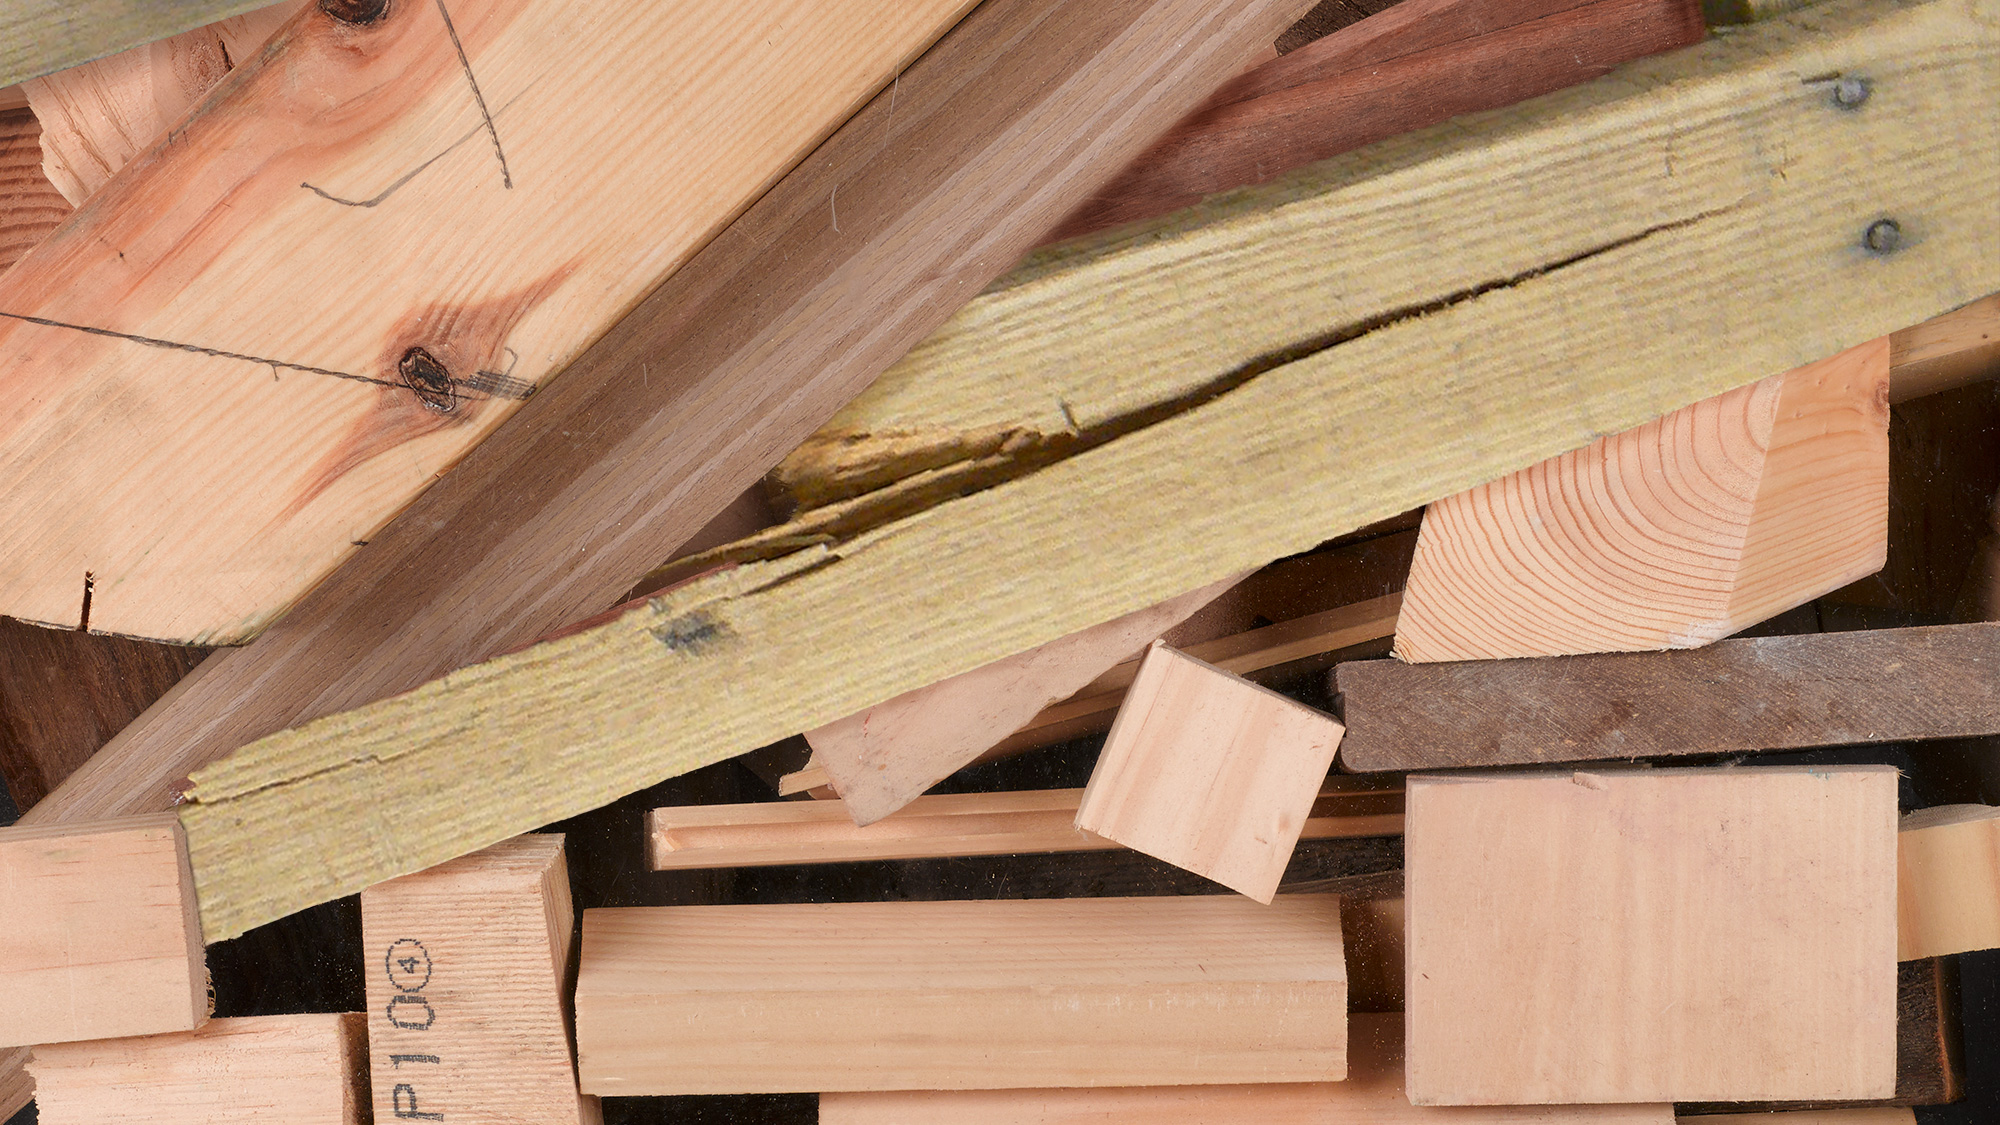 Timber and Wood Recycling - SUEZ in Australia and New Zealand